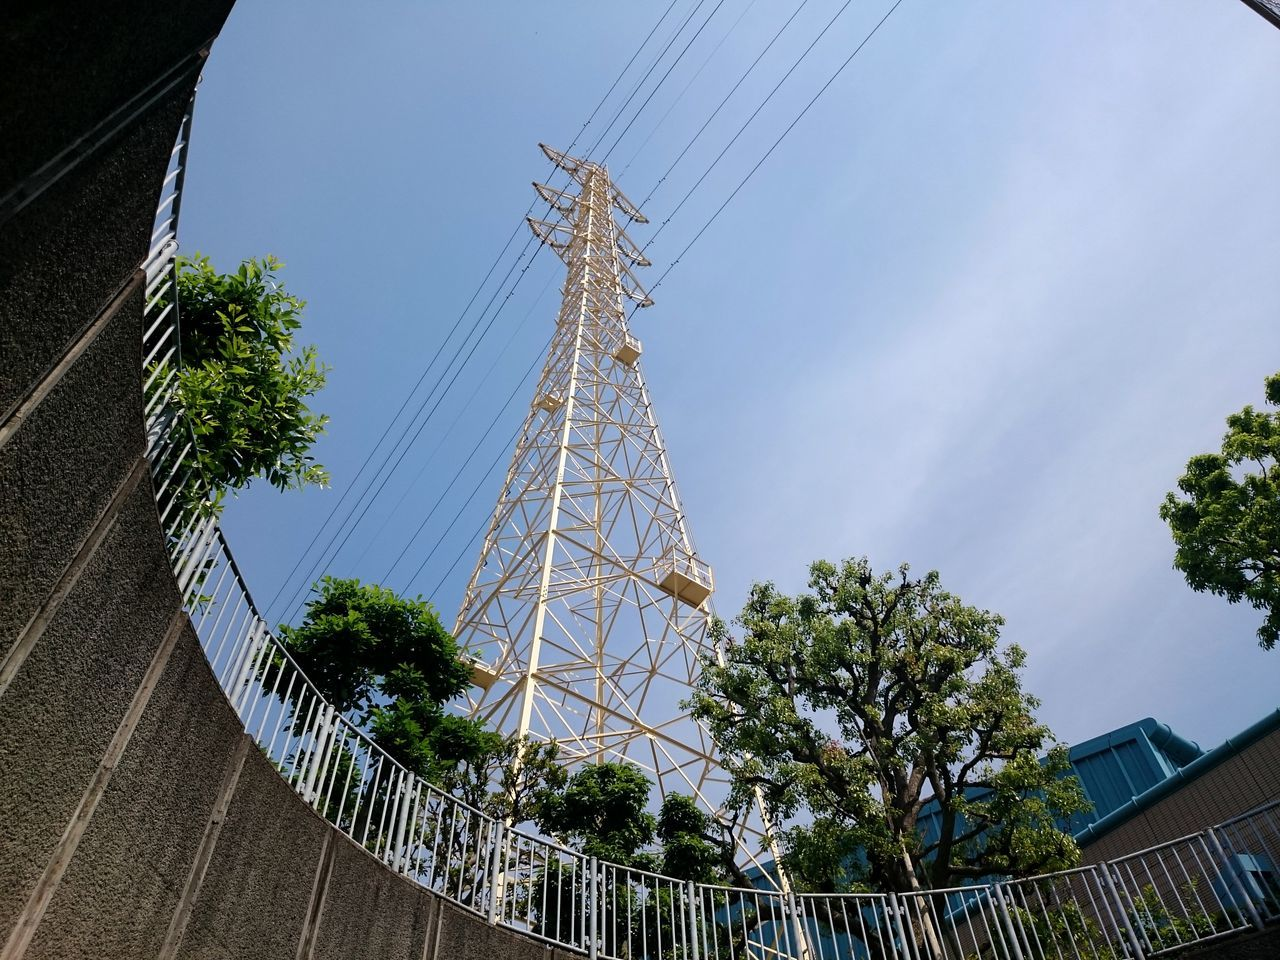 cable, electricity pylon, electricity, tree, low angle view, power supply, power line, connection, day, sky, fuel and power generation, no people, technology, outdoors, architecture